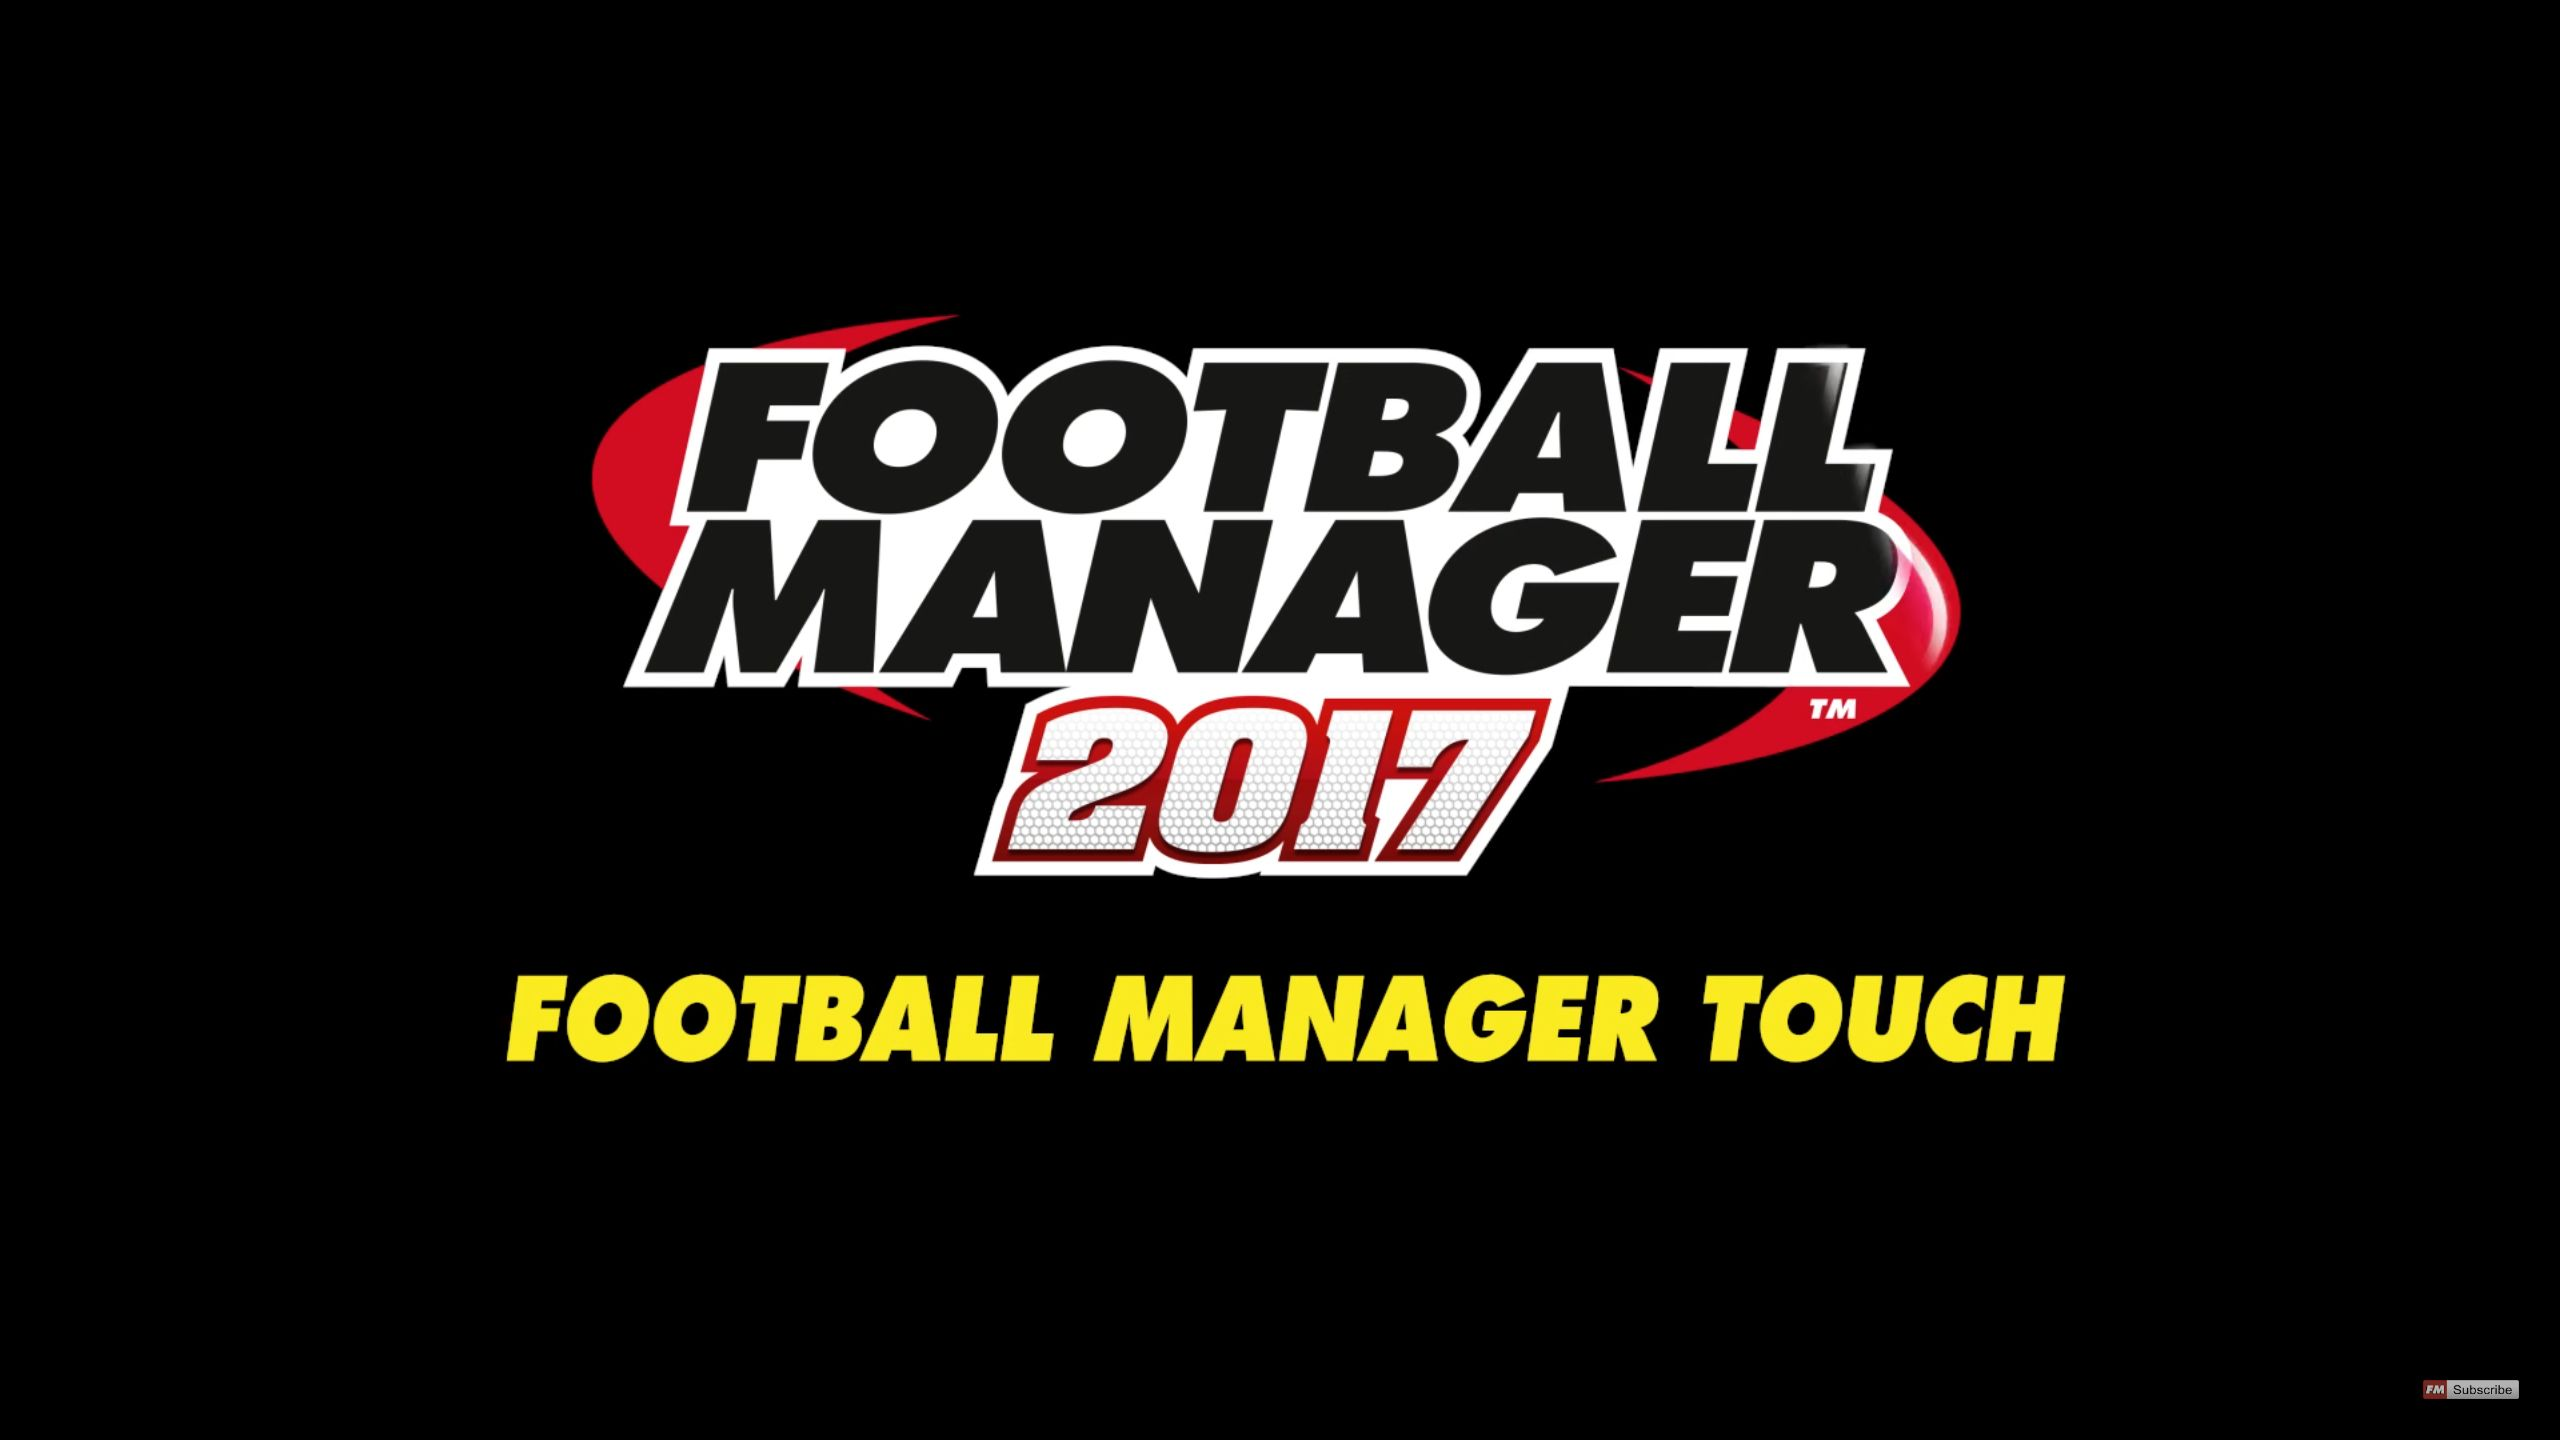 SEGA's Latest Game Is Football Manager Touch 2017 #android #google #smartphones